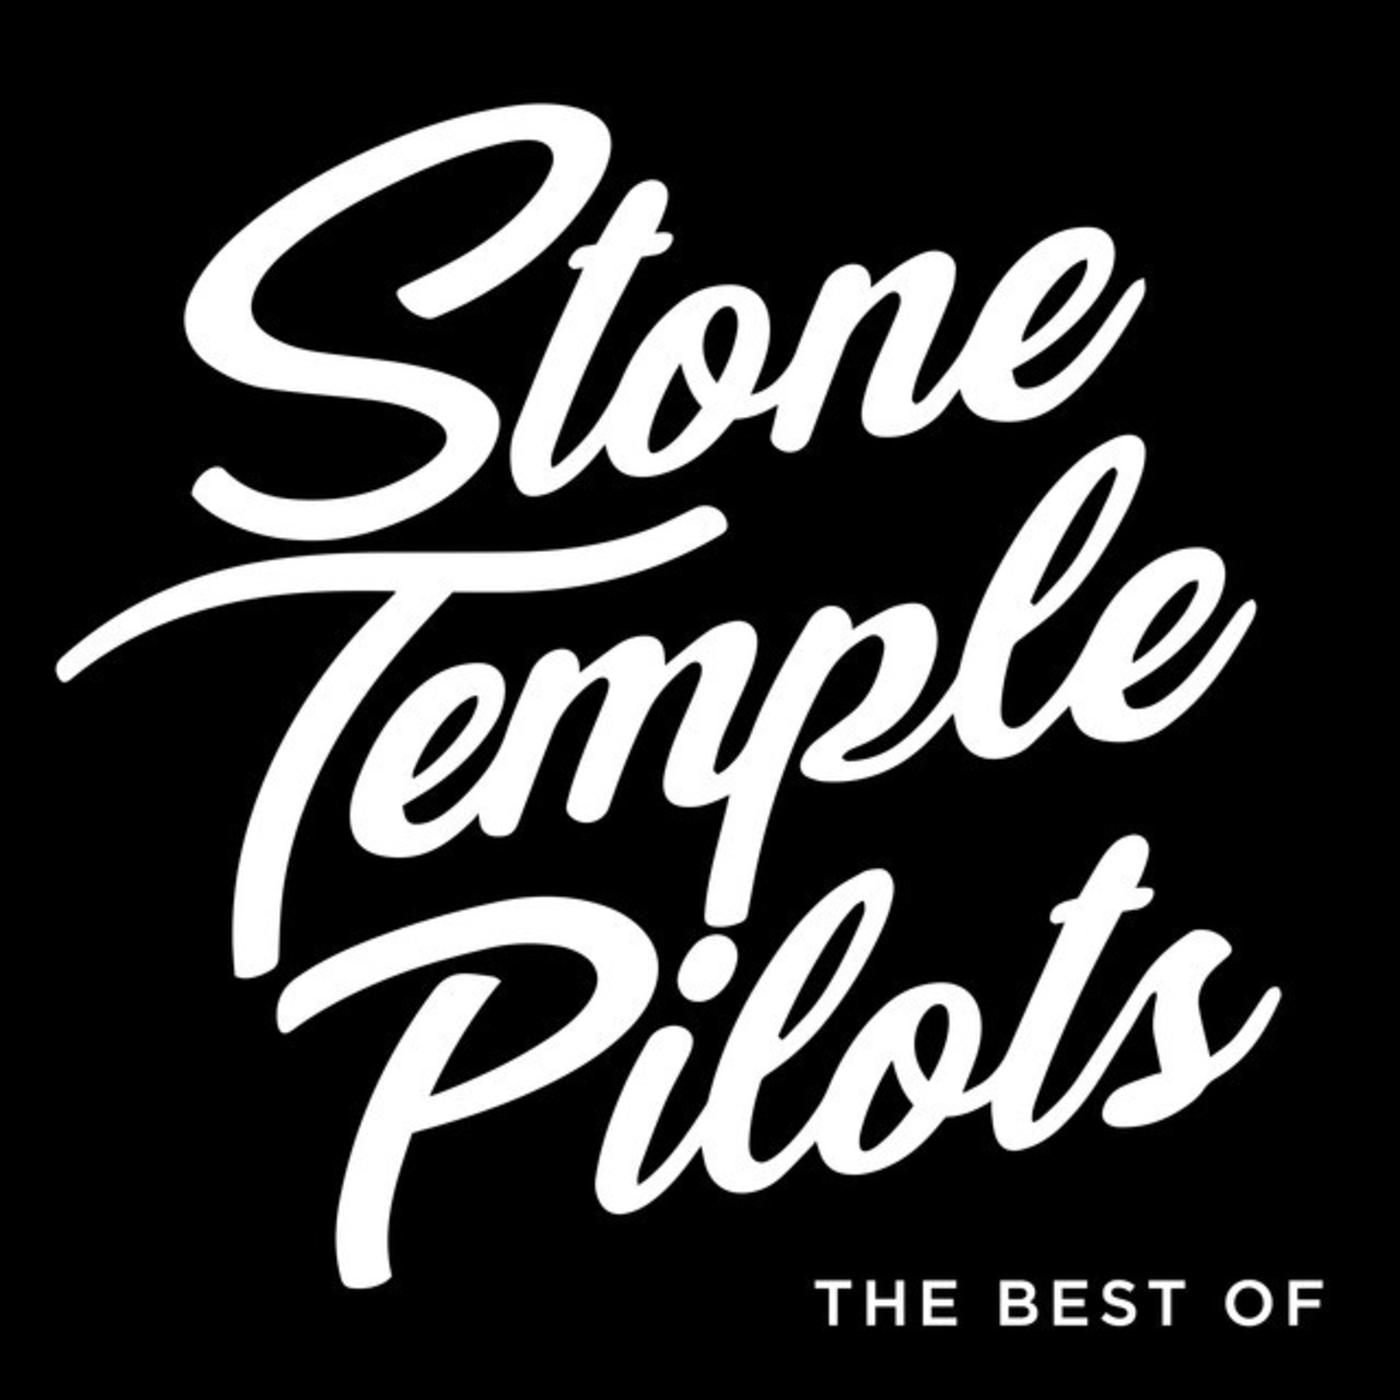 Stone Temple Pilots: The Best Of